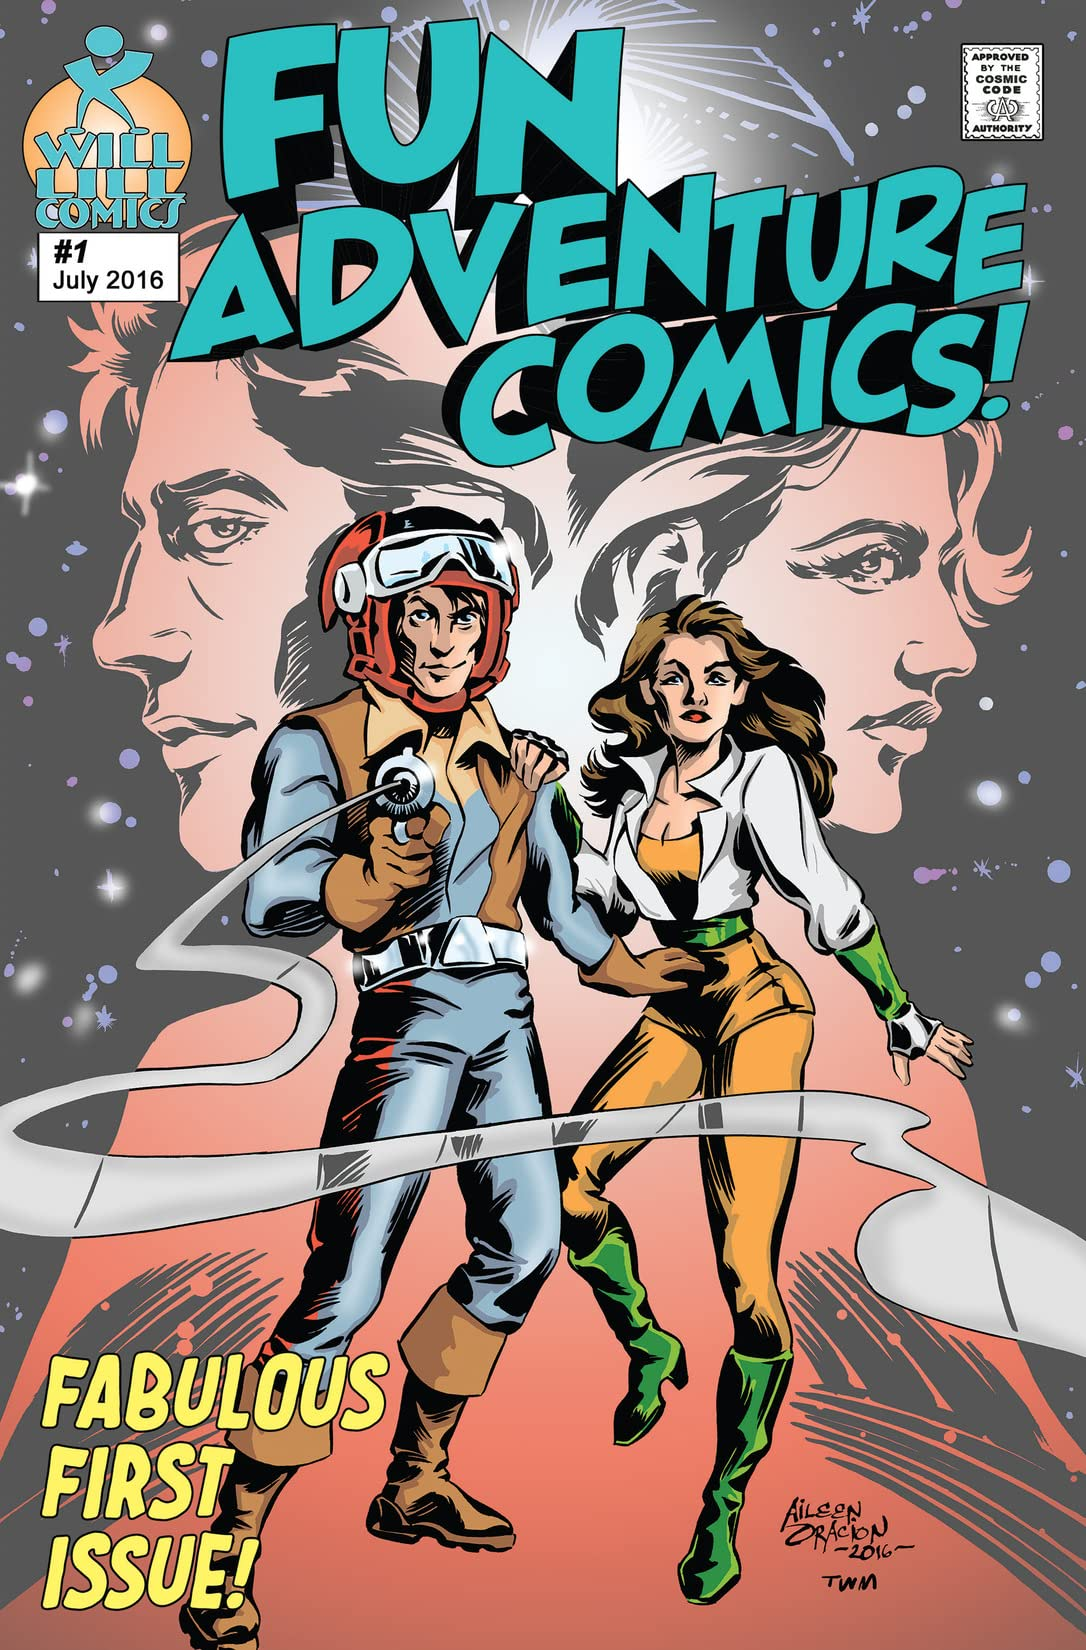 Fun Adventure Comics! #1